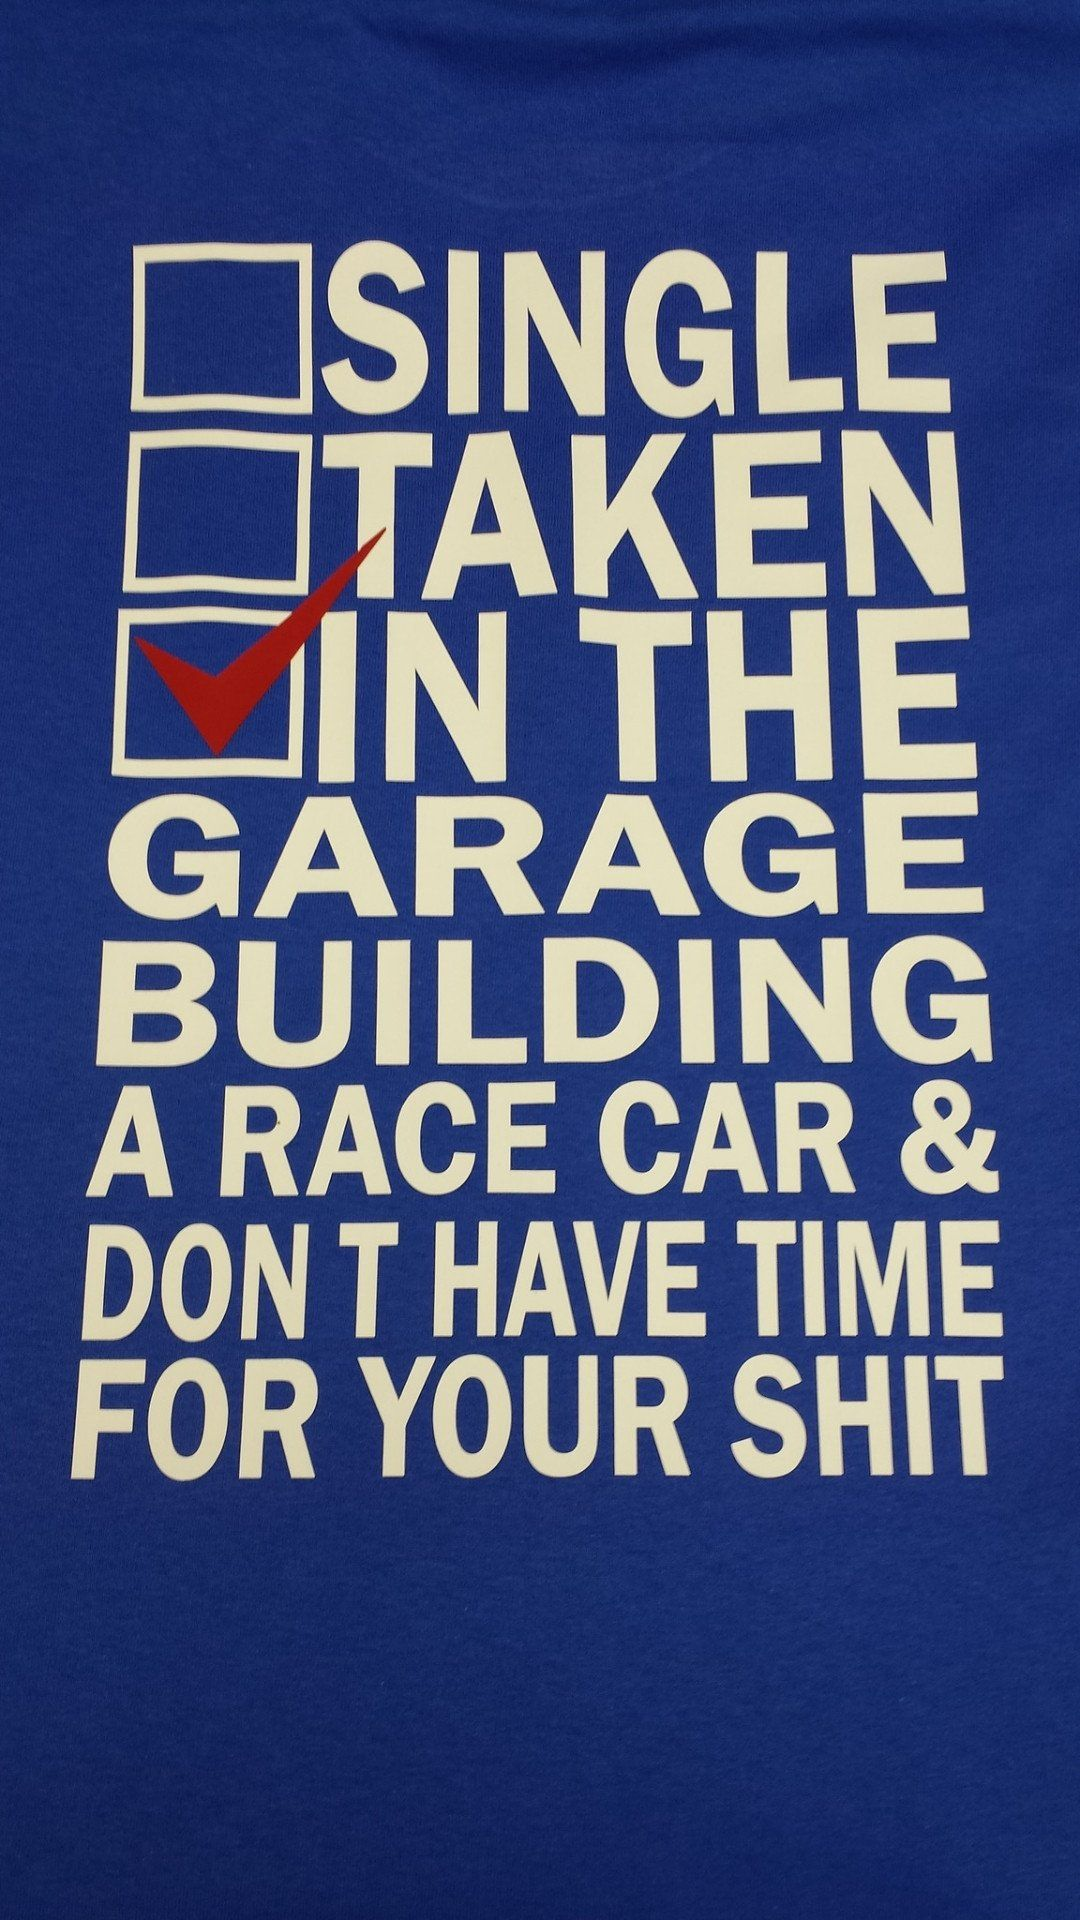 Race Car Quotes Simple Garage Tshirt For Race Cars  Cars Car Humor And Humor